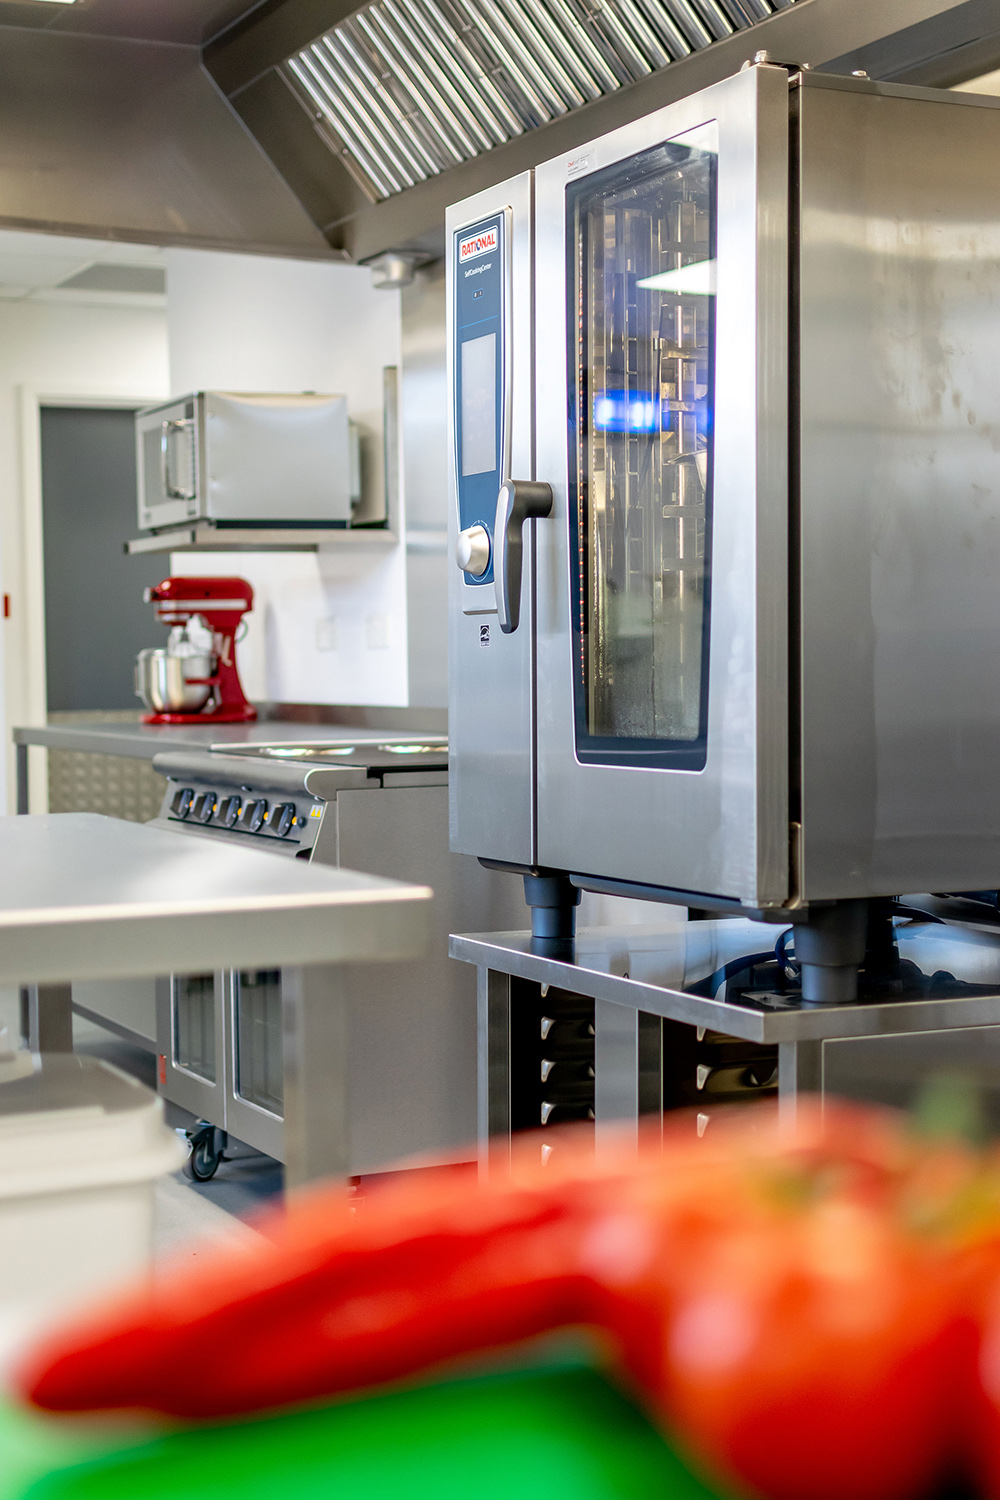 Commercial Kitchen Interior photograph